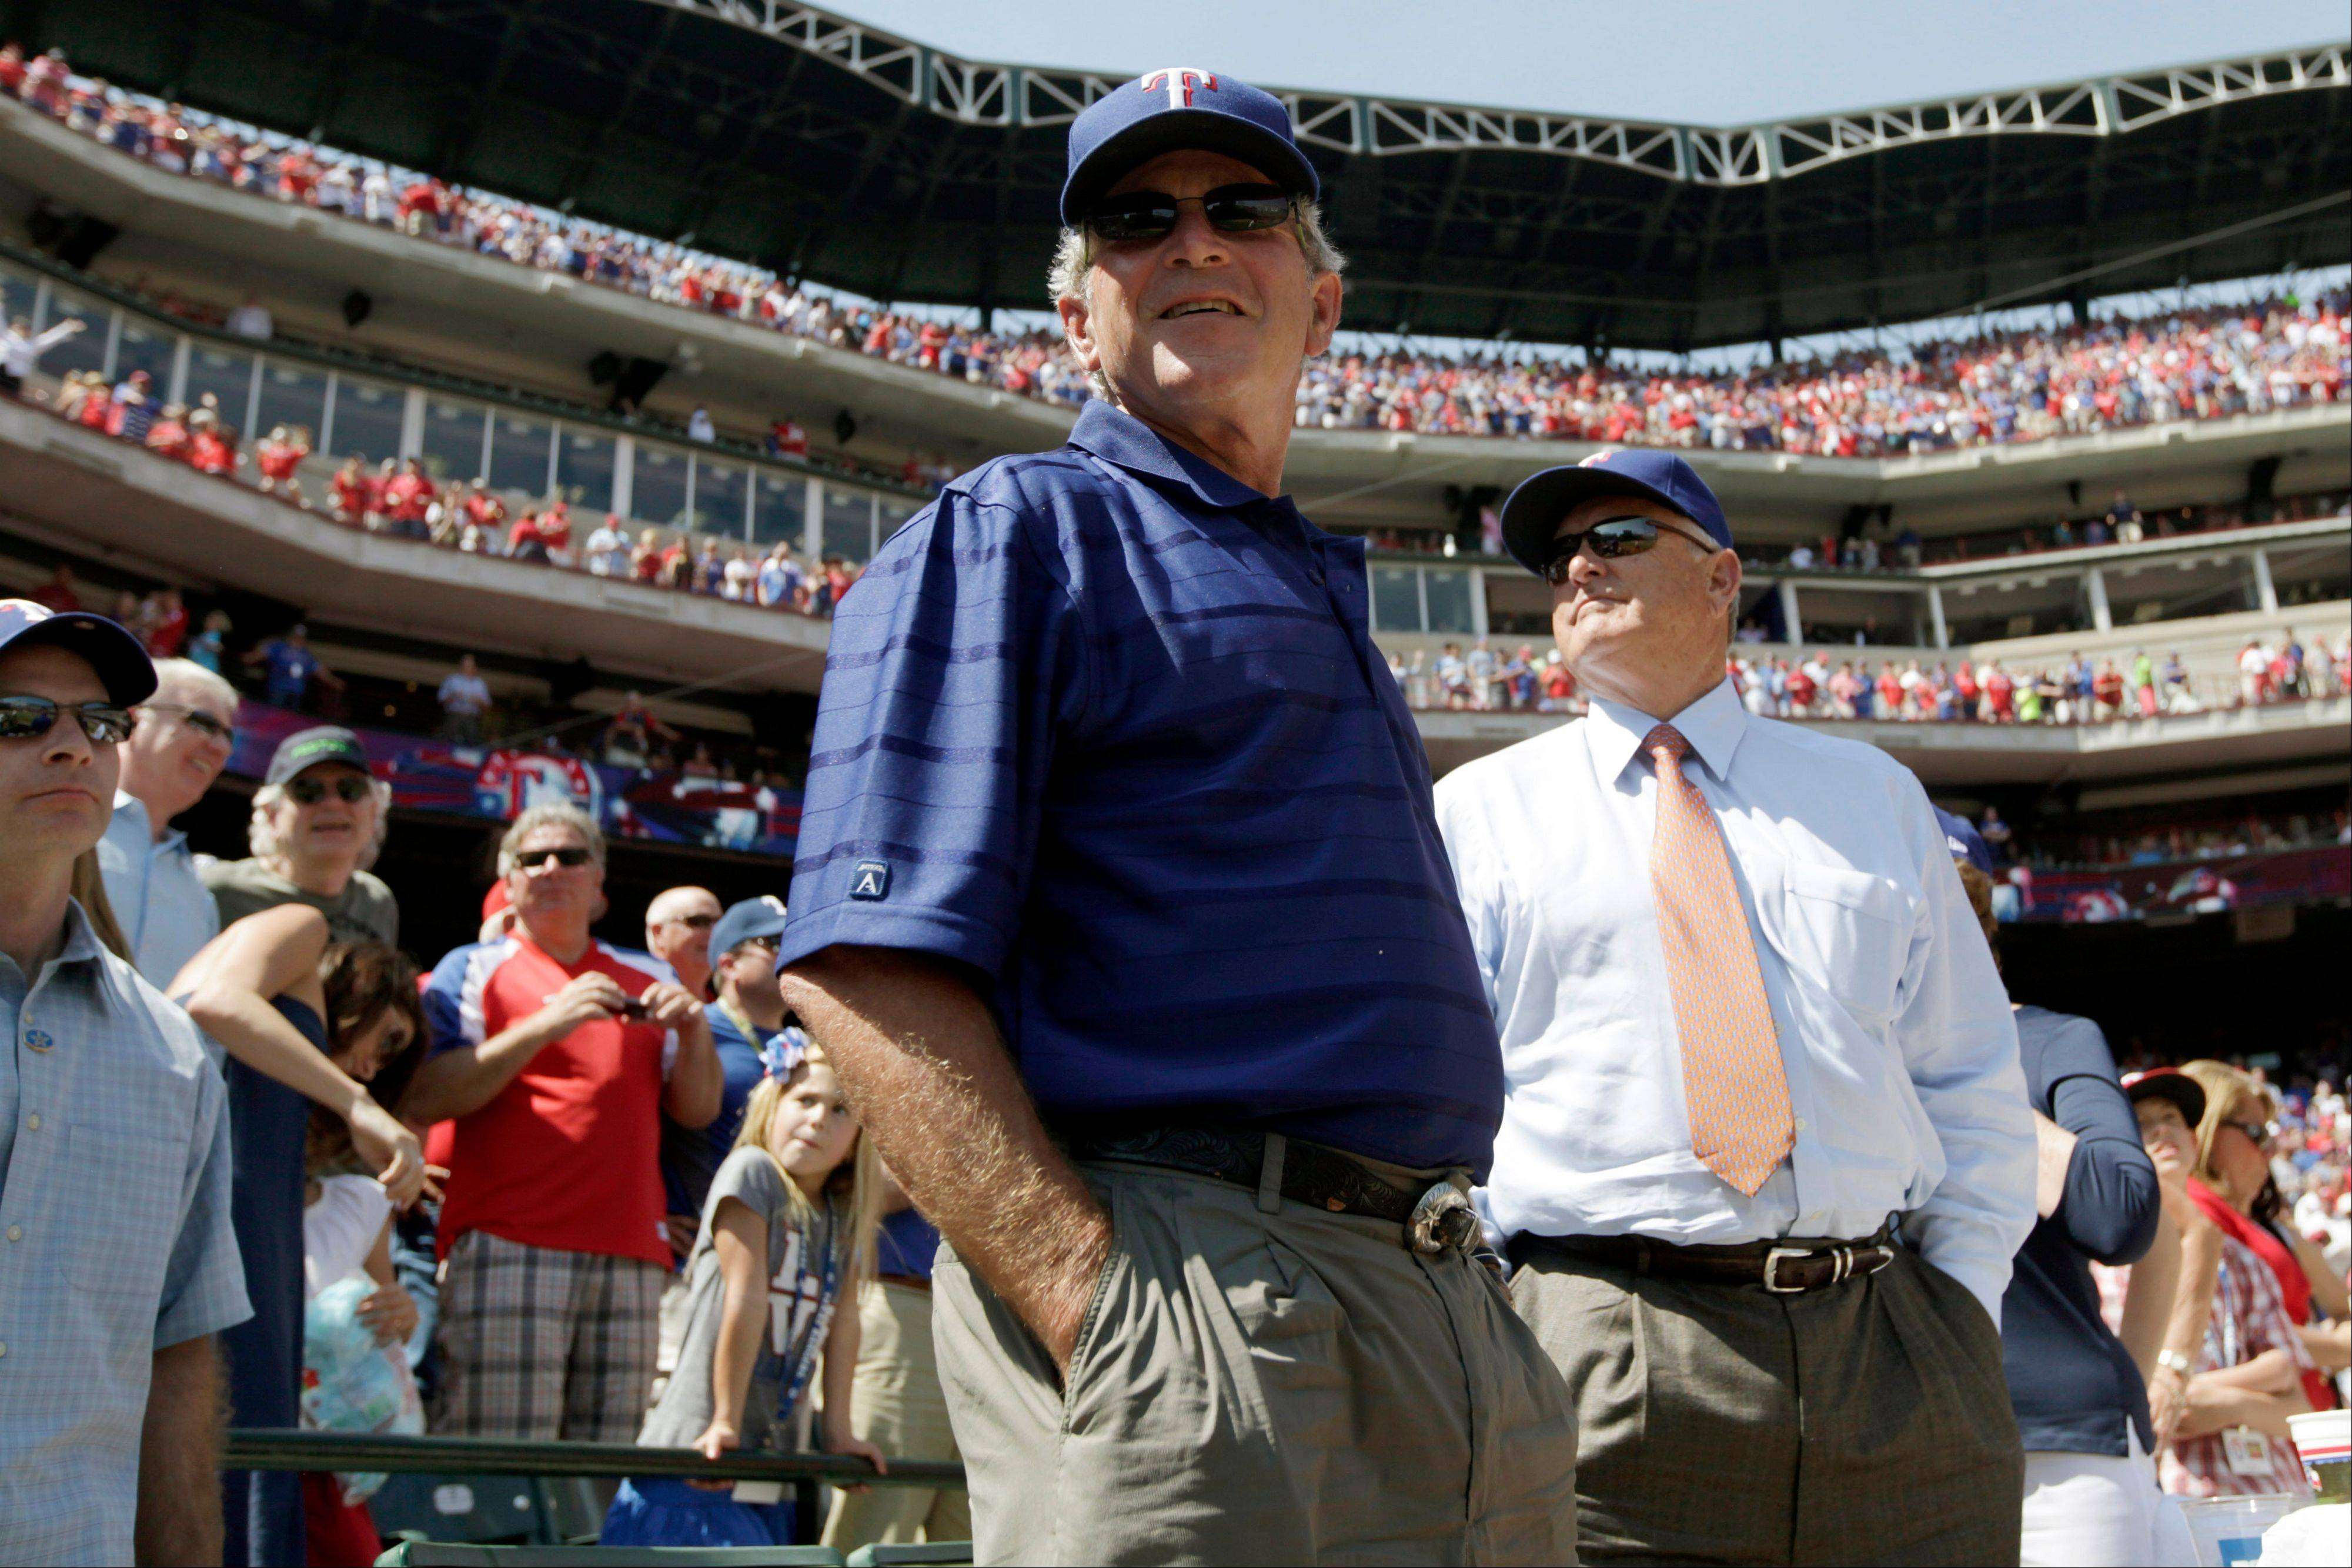 Former President George W. Bush and Texas Rangers President and CEO Nolan Ryan stand during the seventh inning stretch against the Chicago White Sox on Friday in Arlington, Texas.